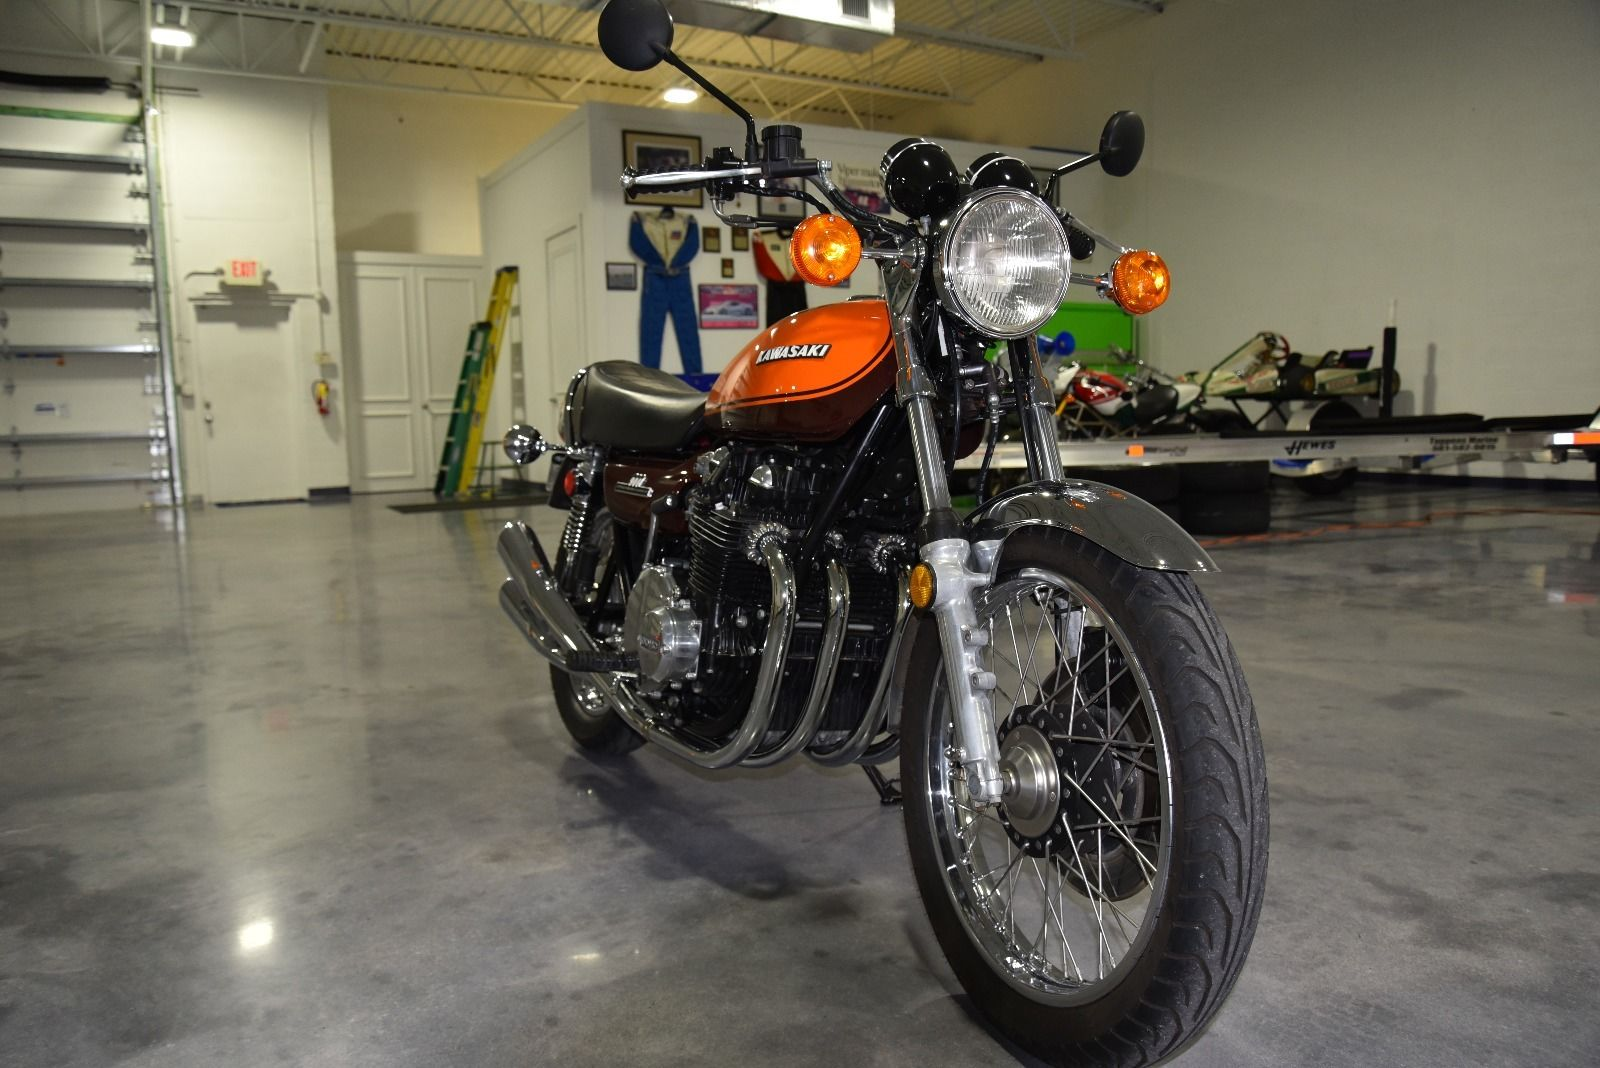 restored kawasaki z1 900 1973 photographs at classic bikes restored bikes restored. Black Bedroom Furniture Sets. Home Design Ideas